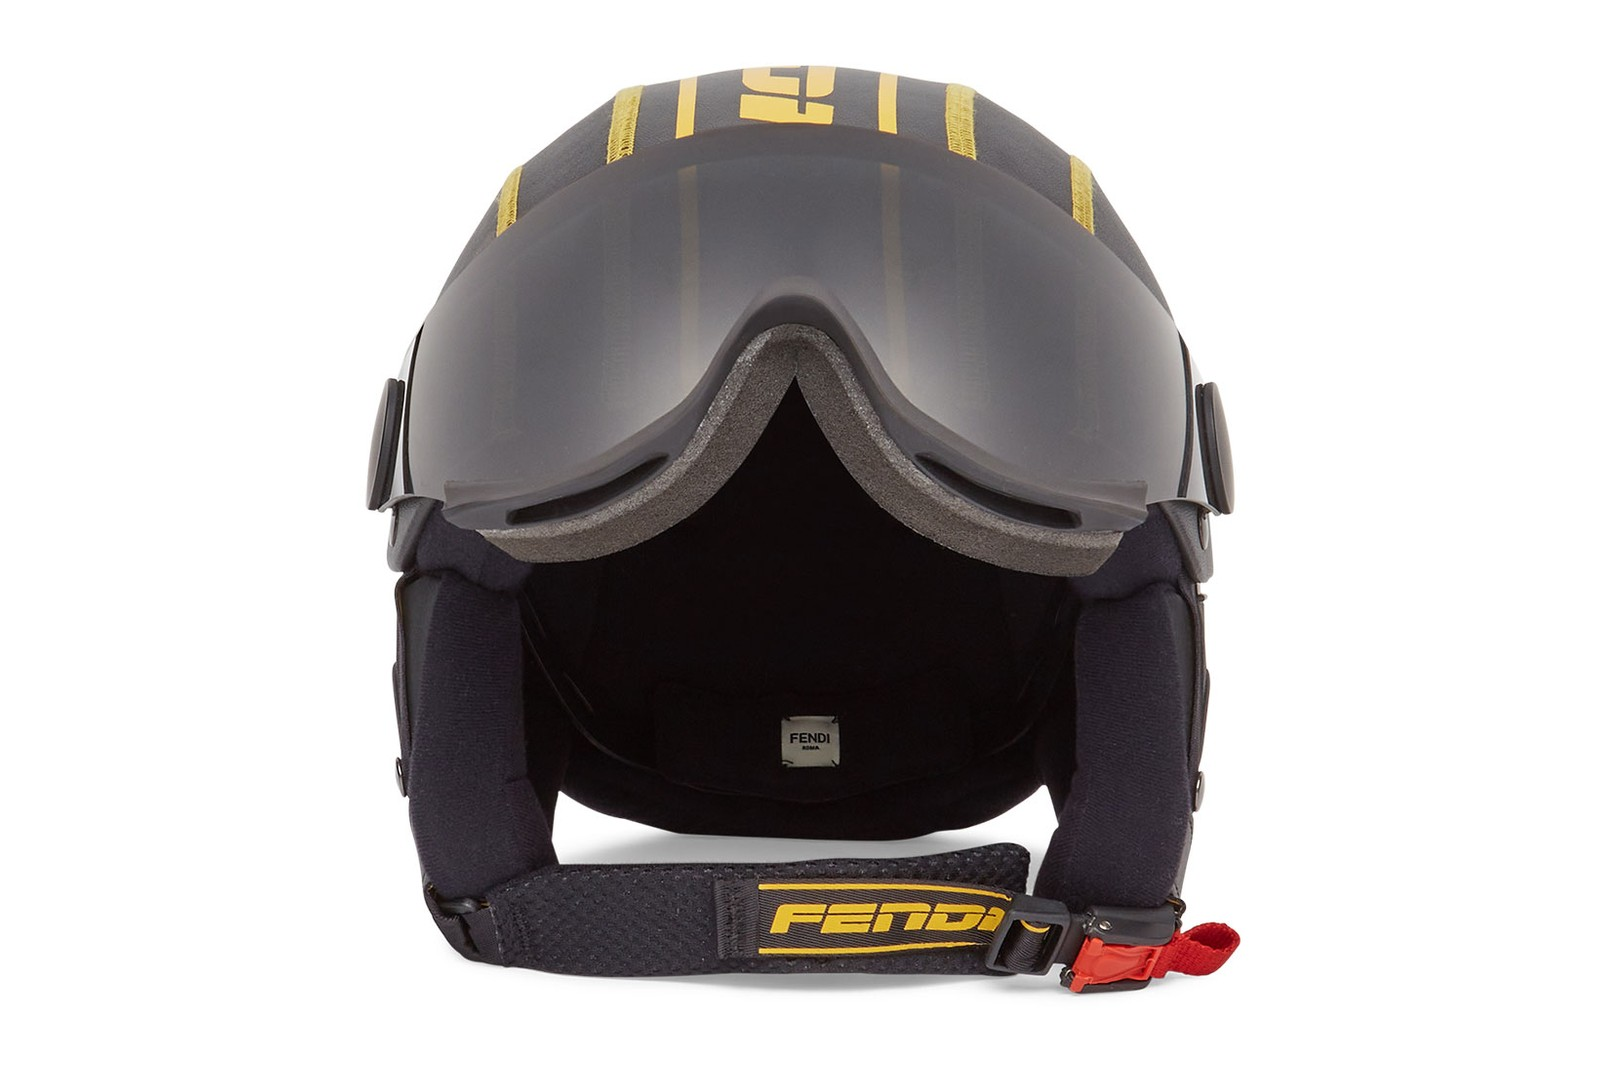 fendi skiwear shoes bags hats beanies helmets moon boot winter snow accessories price release